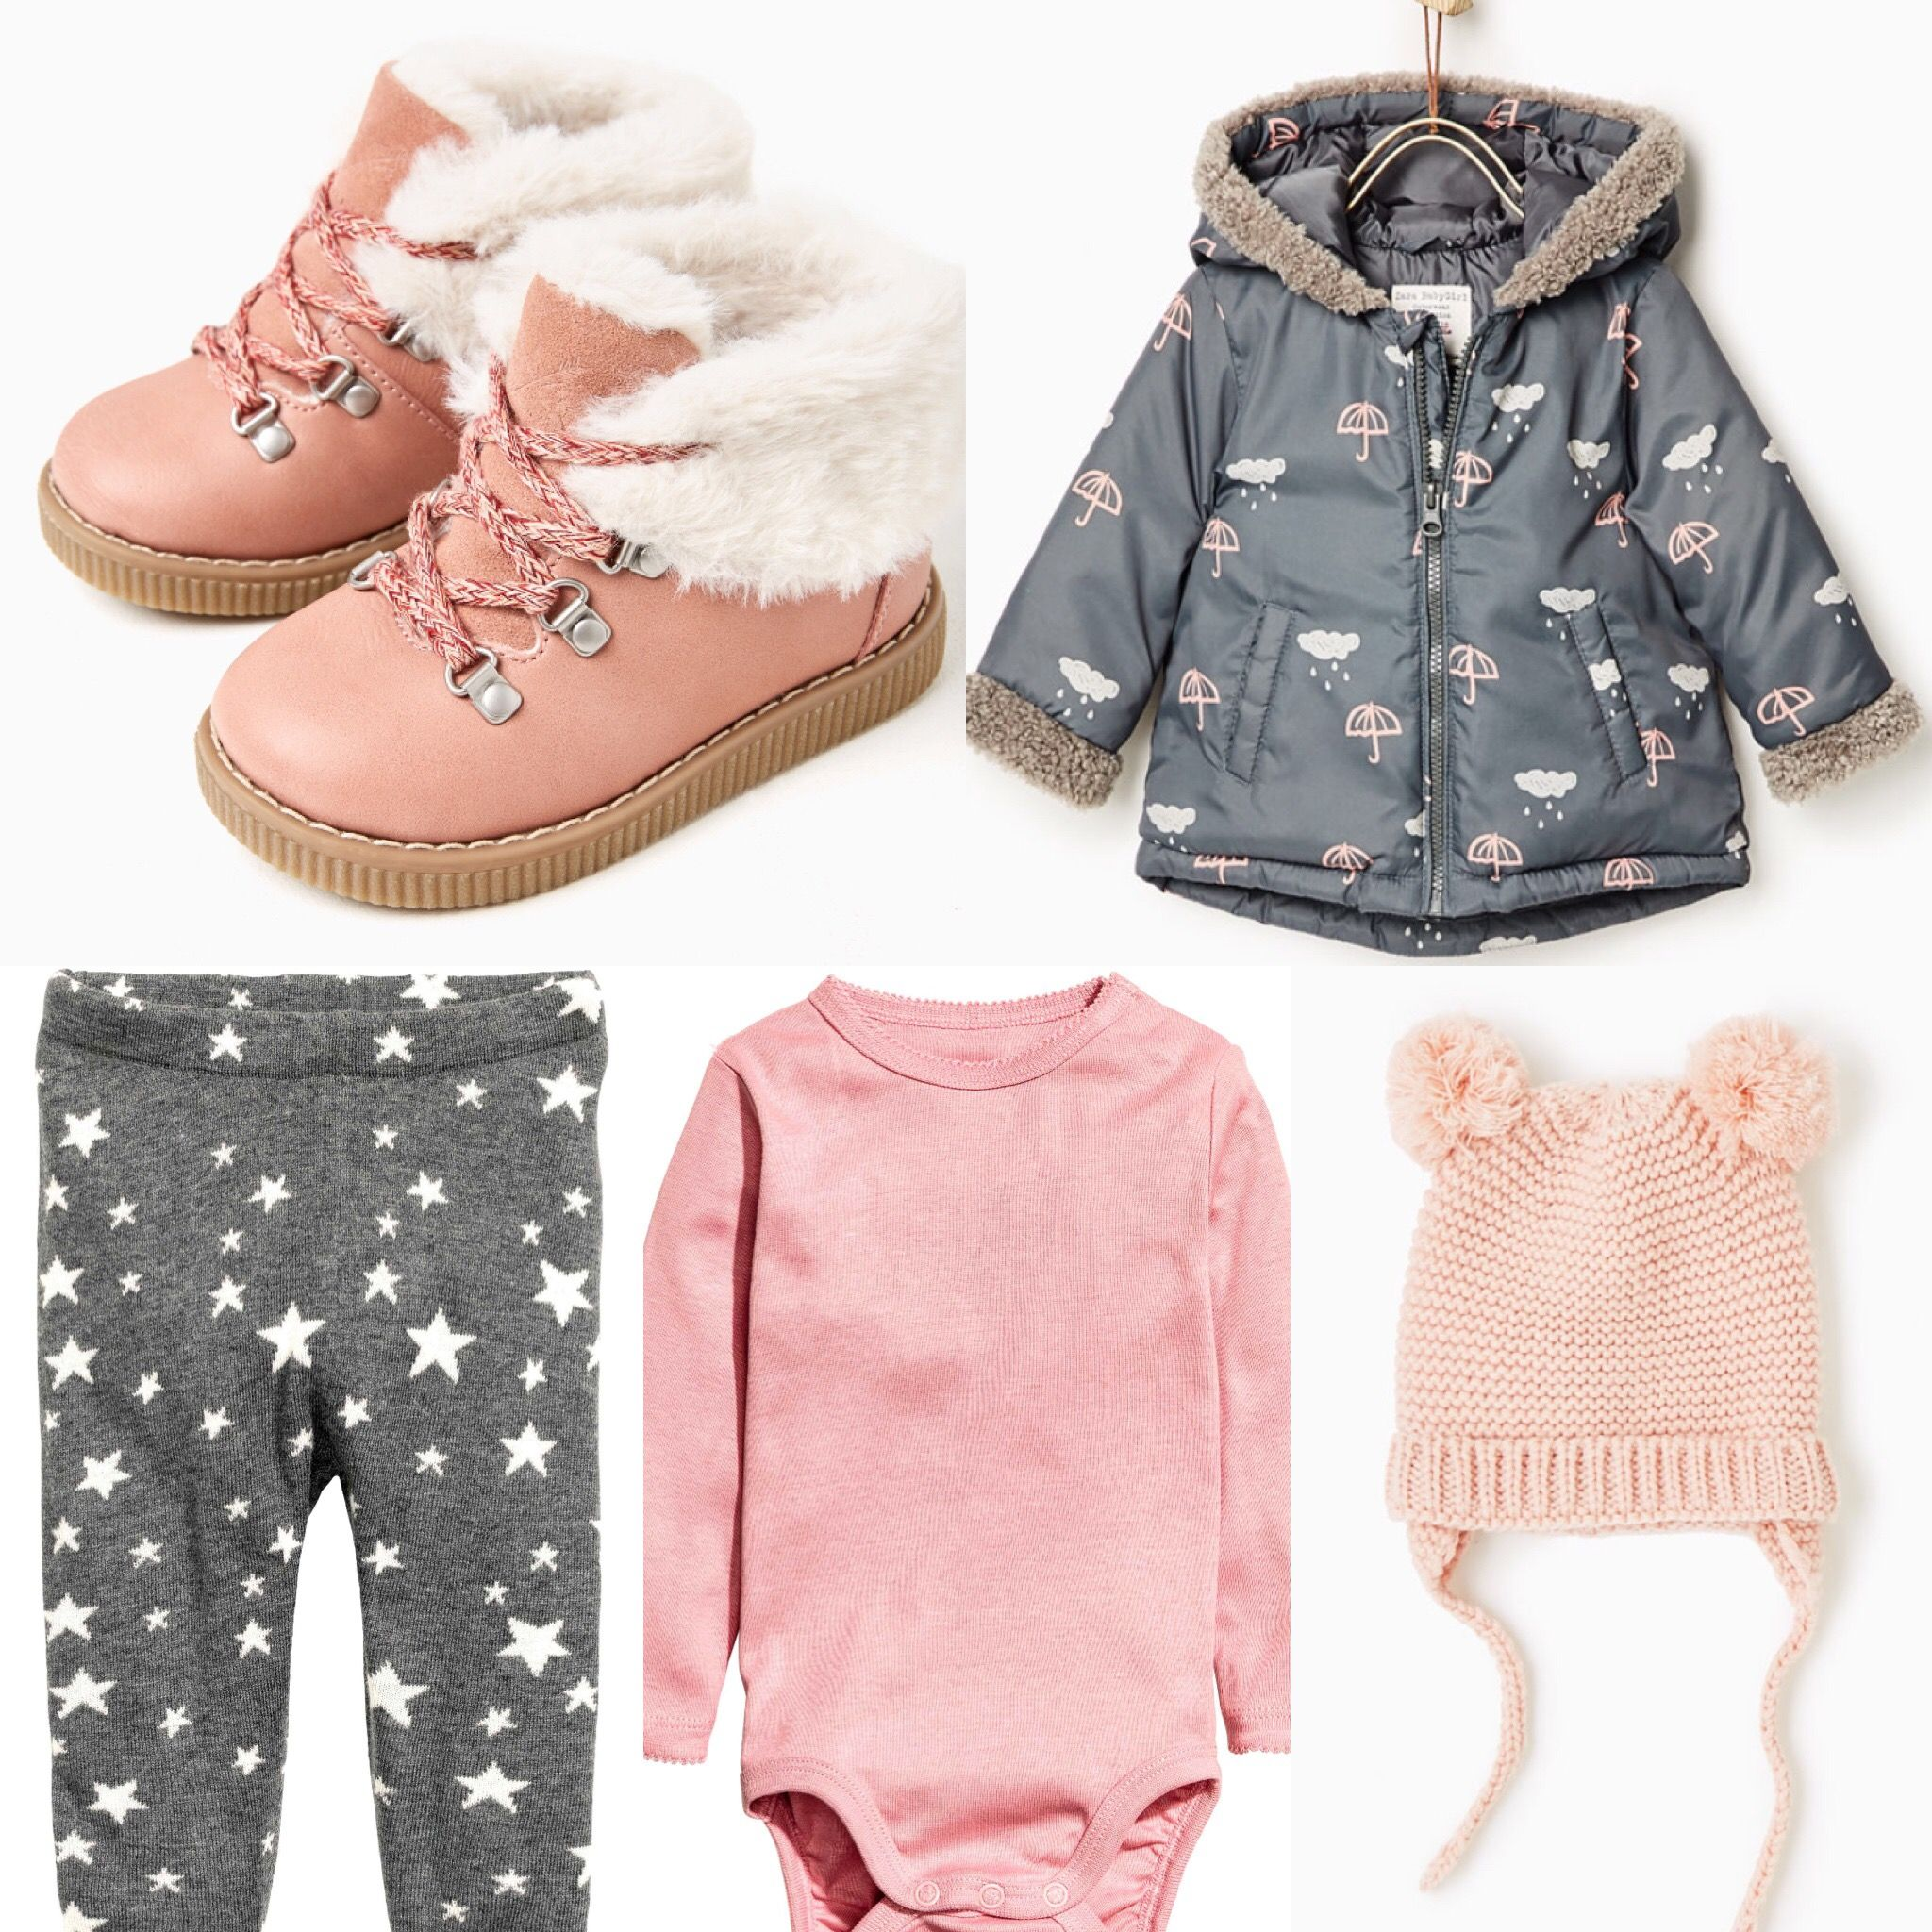 Baby girl outfit idea. Zara pink boots, pink hat, grey coat. H&M